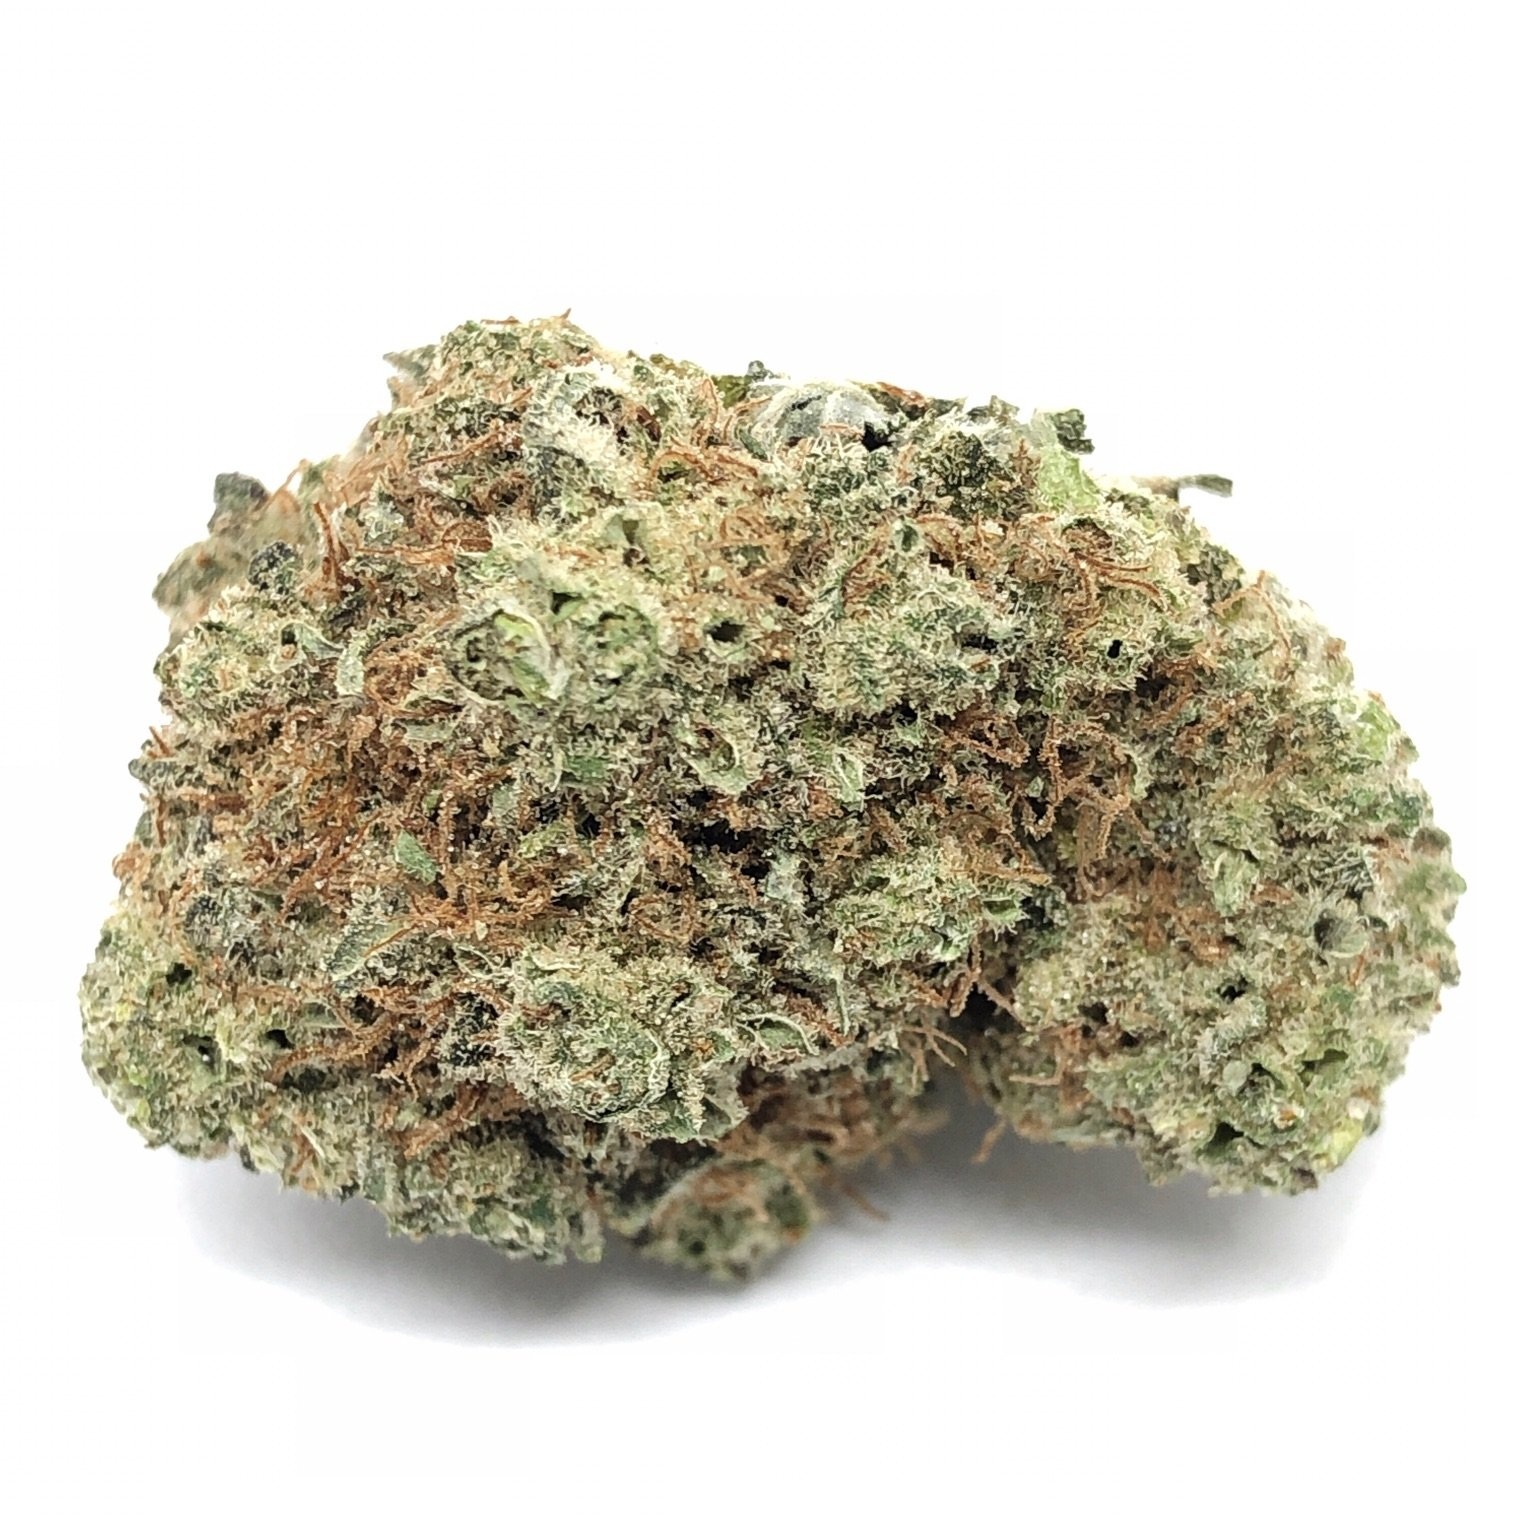 Hindu Kush by Ounce Buddy - Image © 2021 Ounce Buddy. All Rights Reserved.